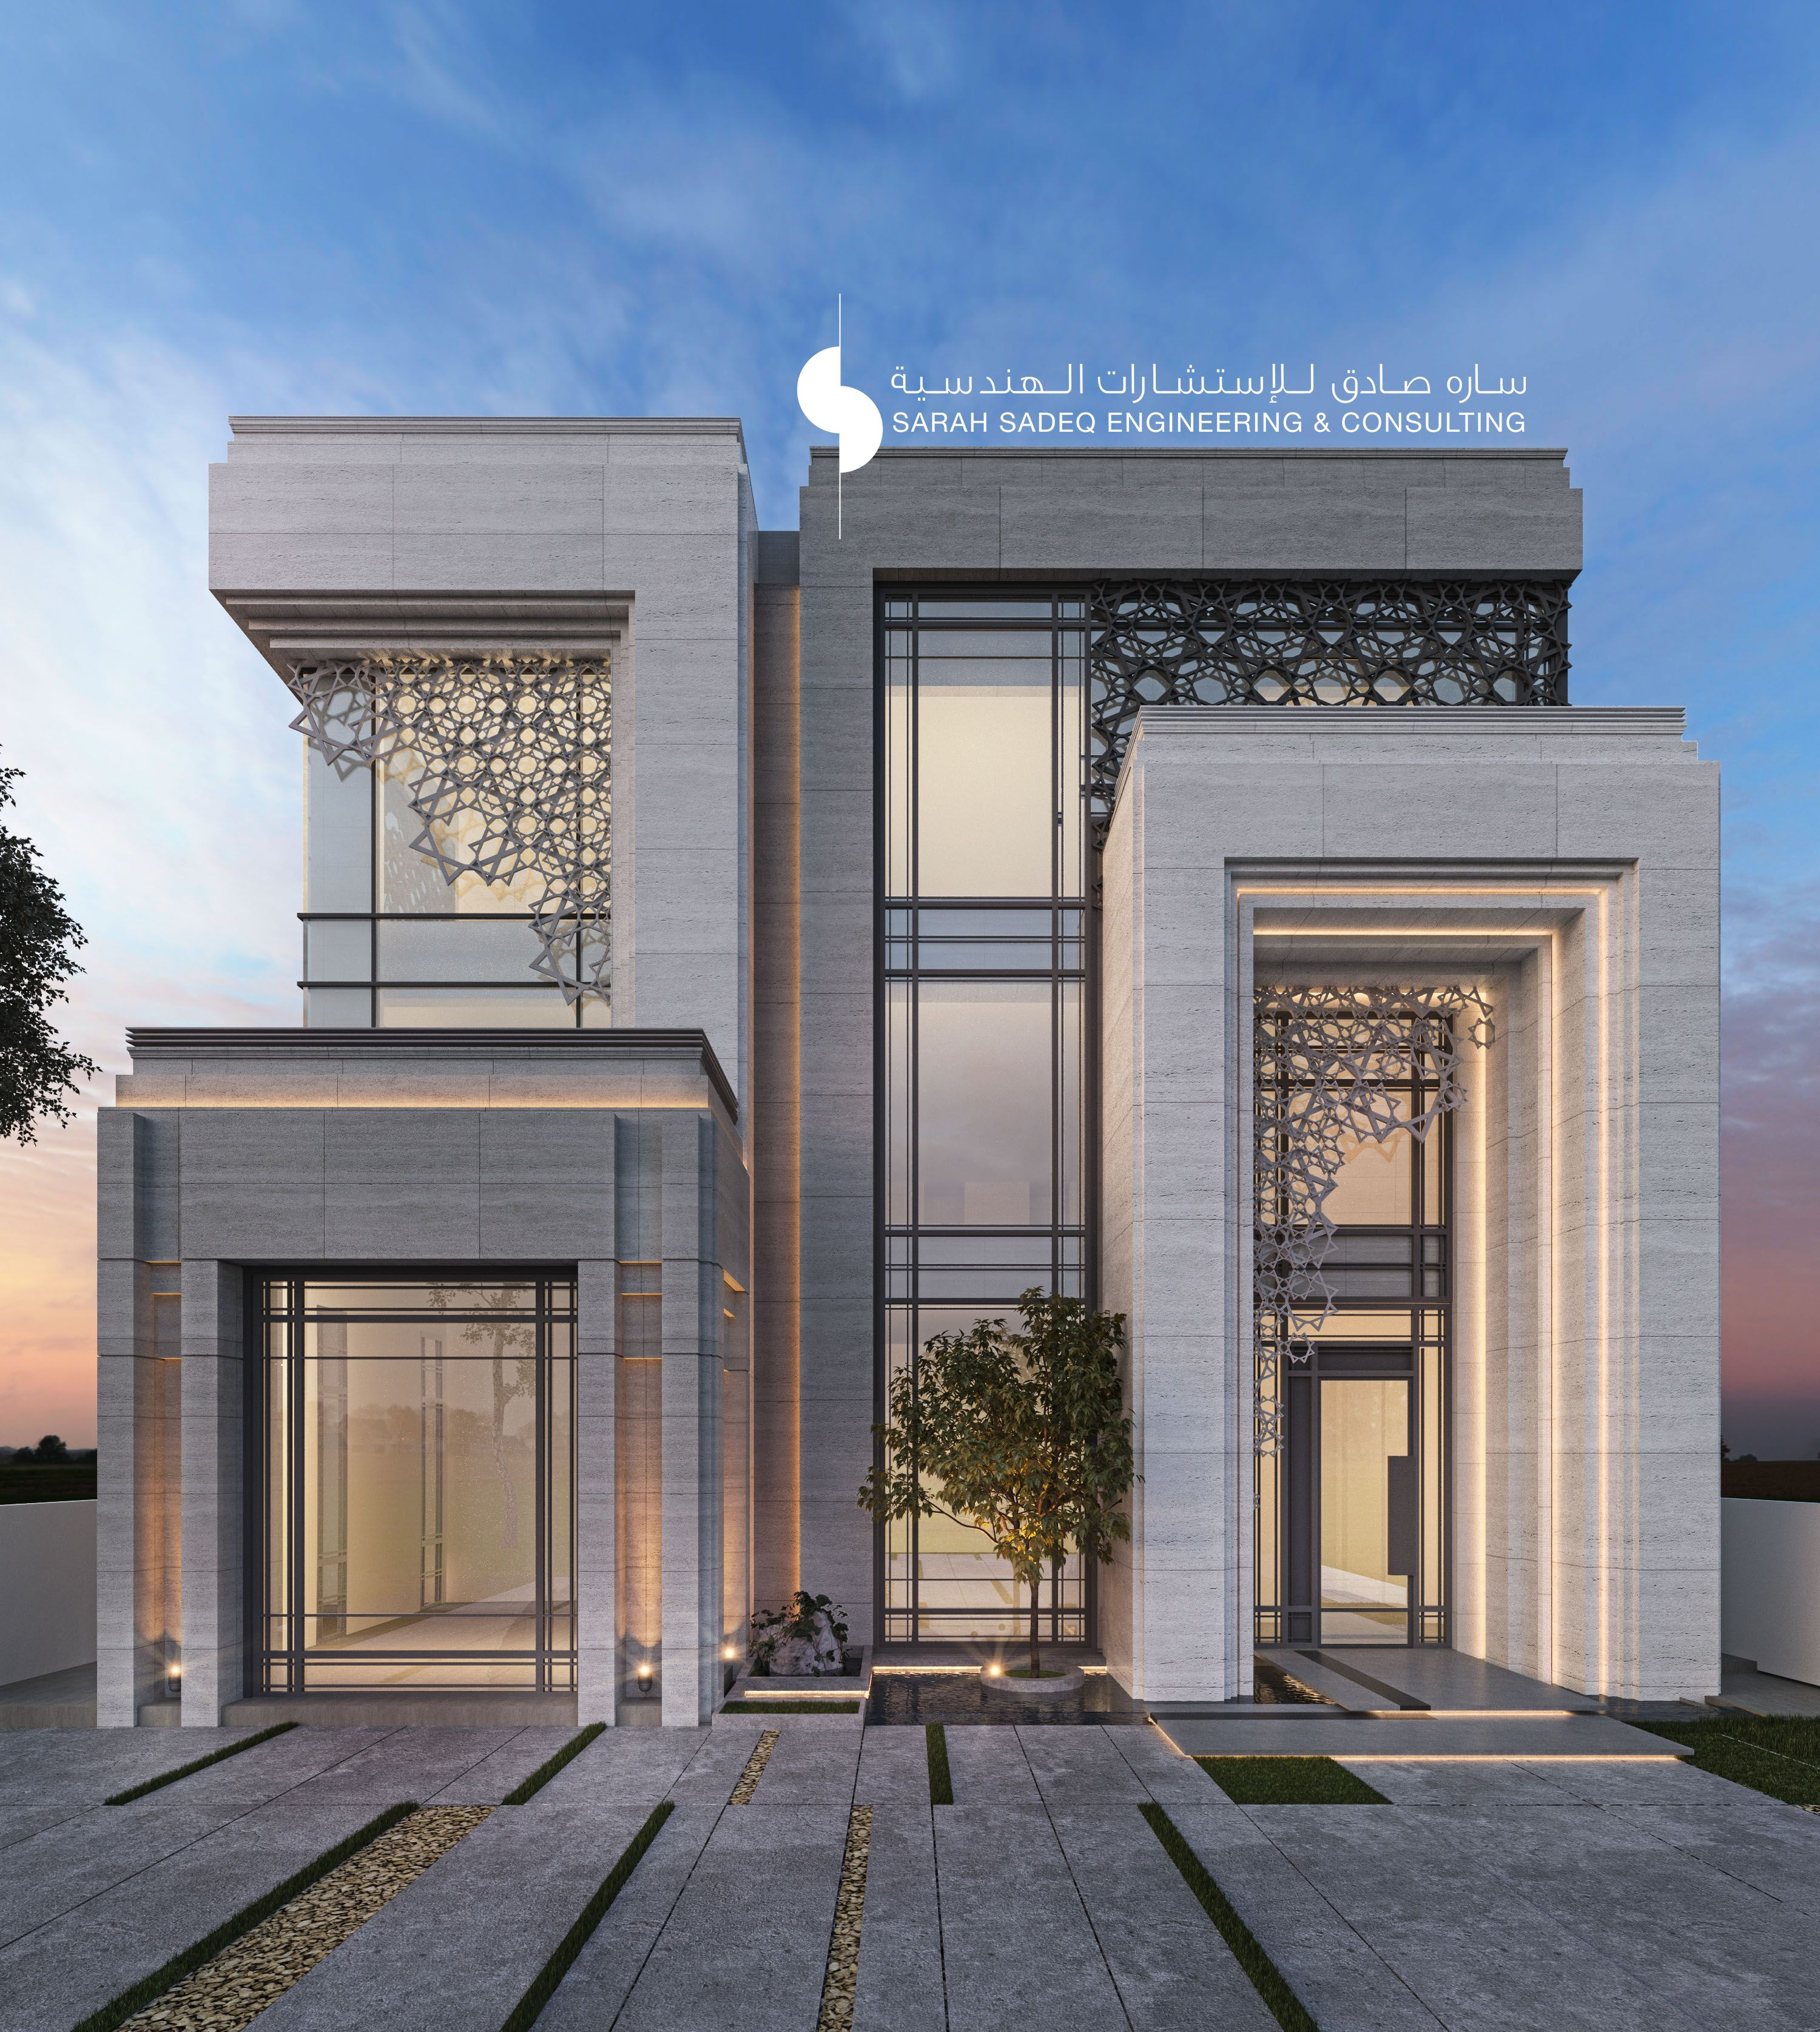 500 m private villa kuwait sarah sadeq architects | sarah sadeq ...